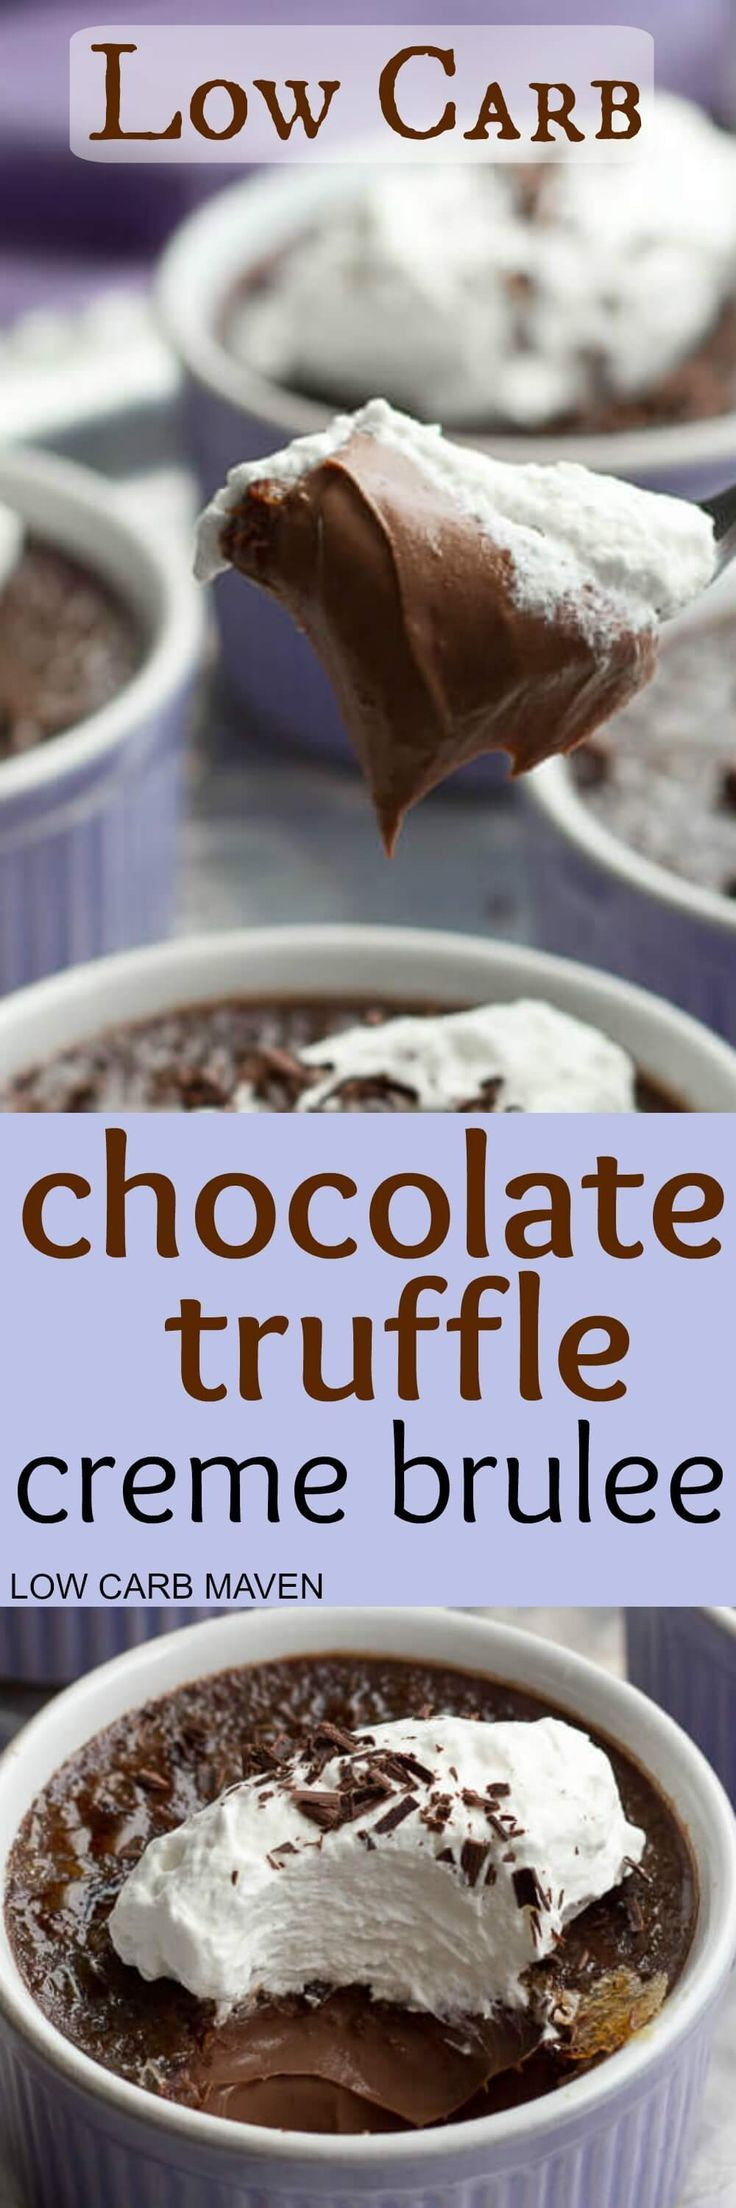 check out low carb chocolate truffle creme brulee it 39 s so easy to make chocolate truffles. Black Bedroom Furniture Sets. Home Design Ideas